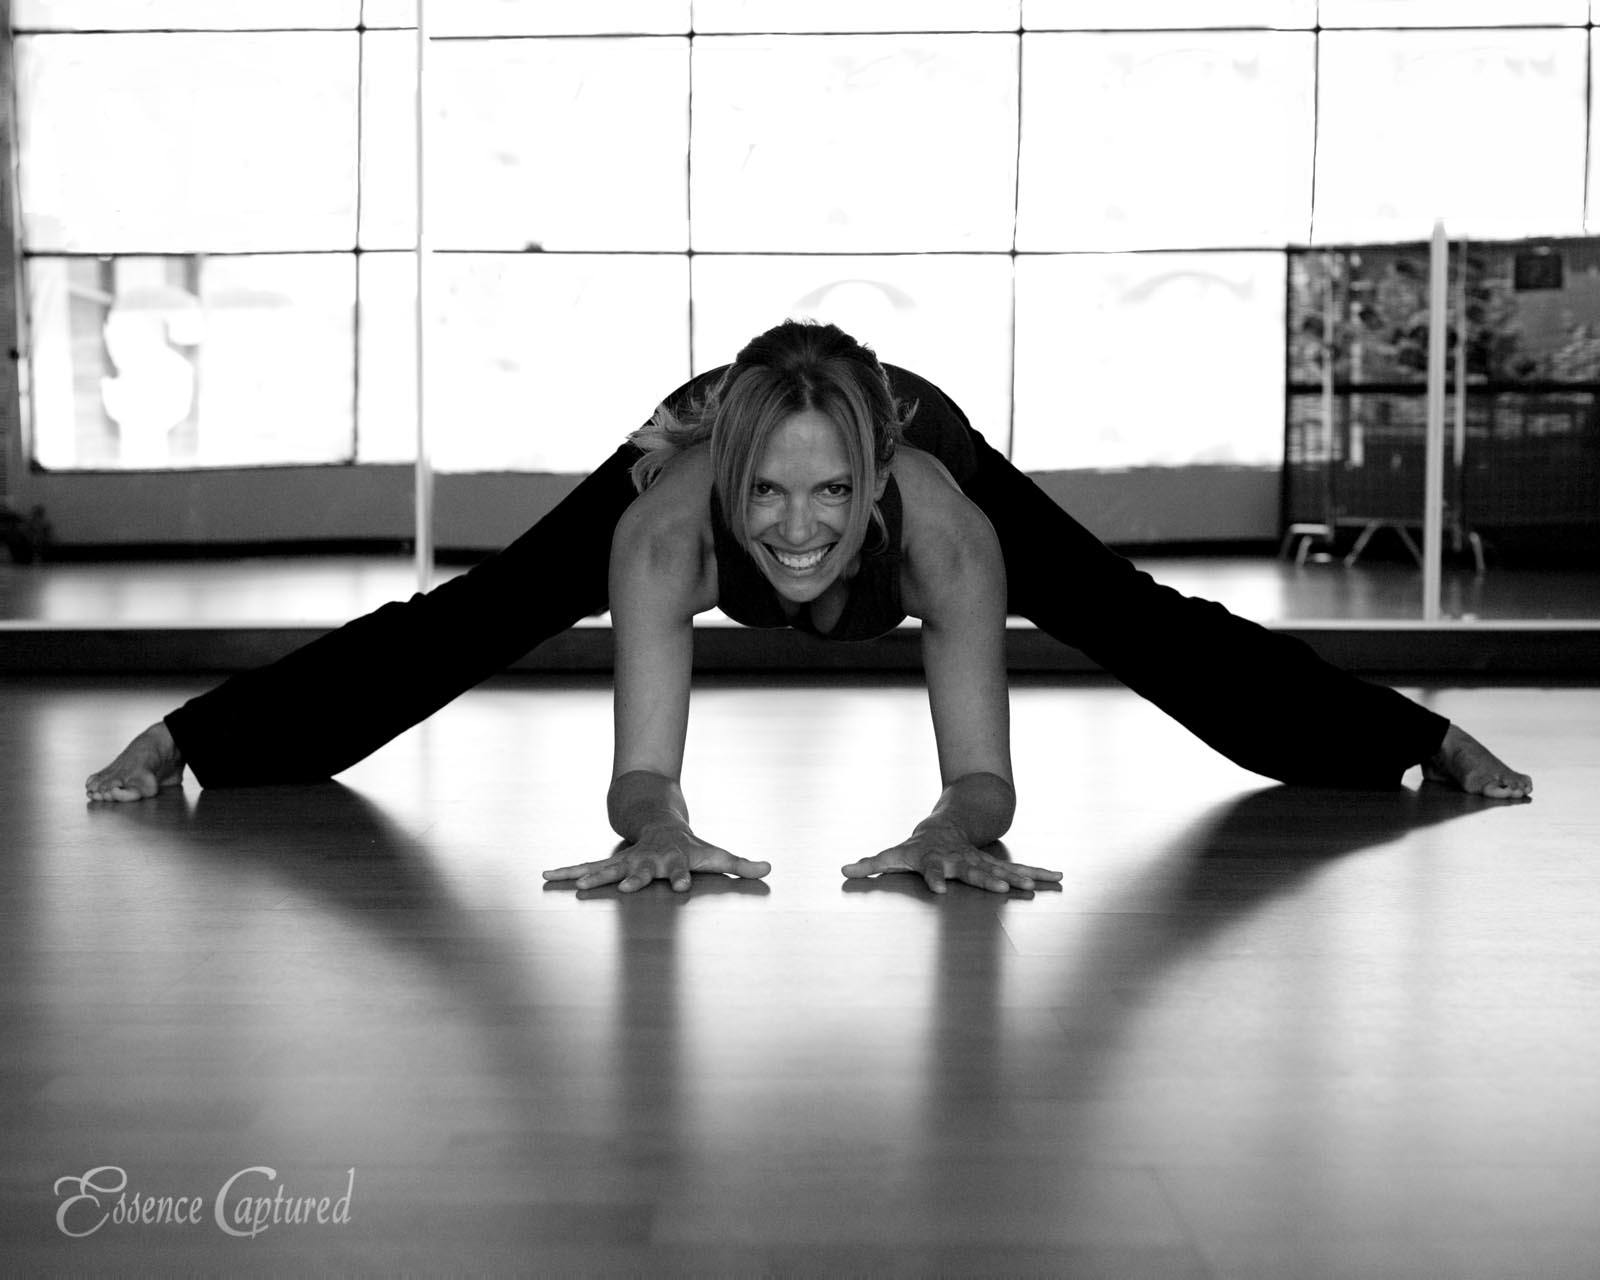 female yoga instructor legs wide elbows on floor mirror backdrop reflecting window light